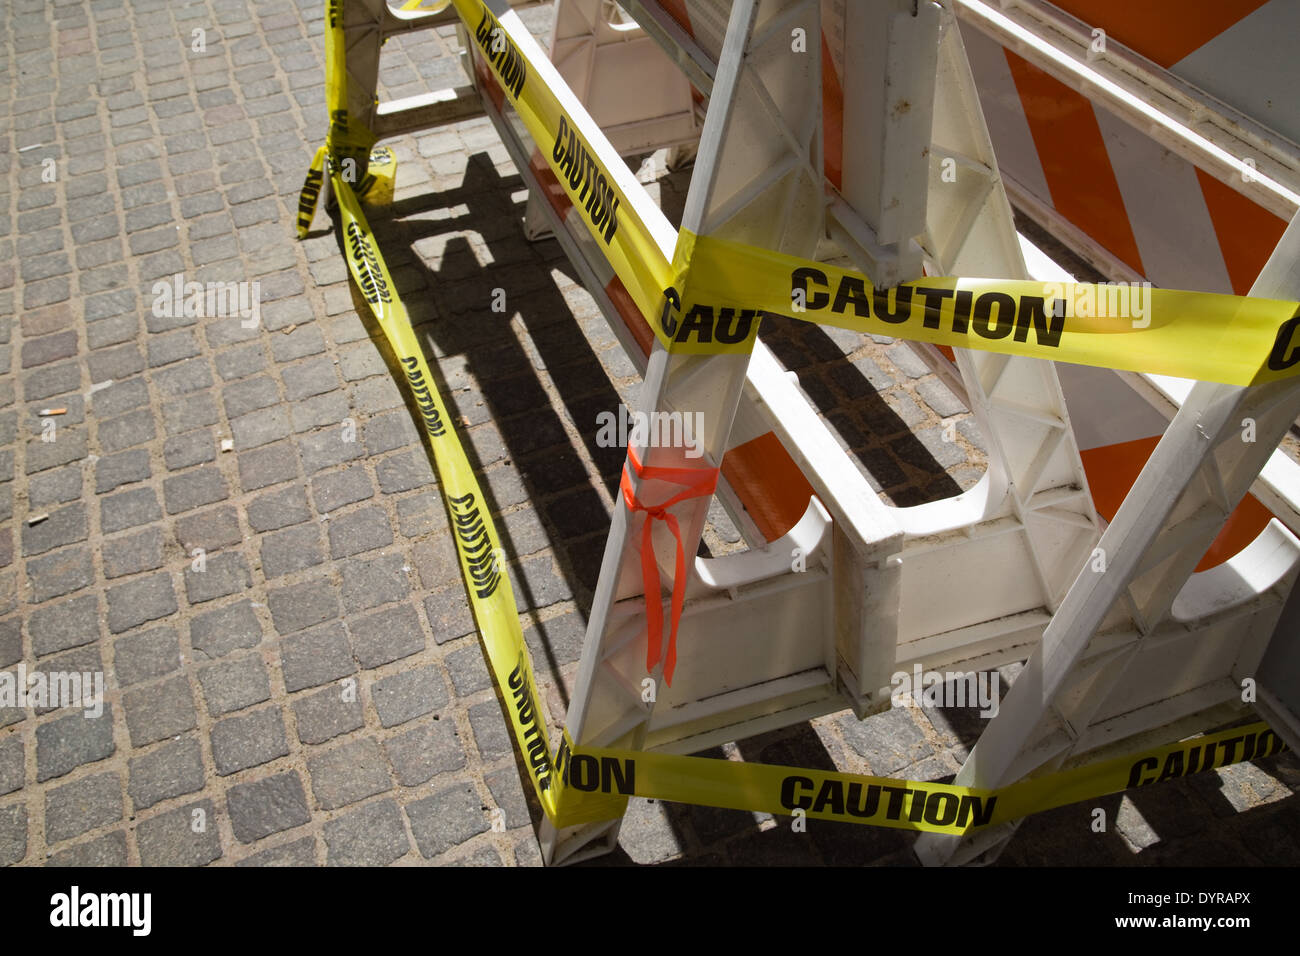 caution tape and construction barricade on new york city street - Stock Image